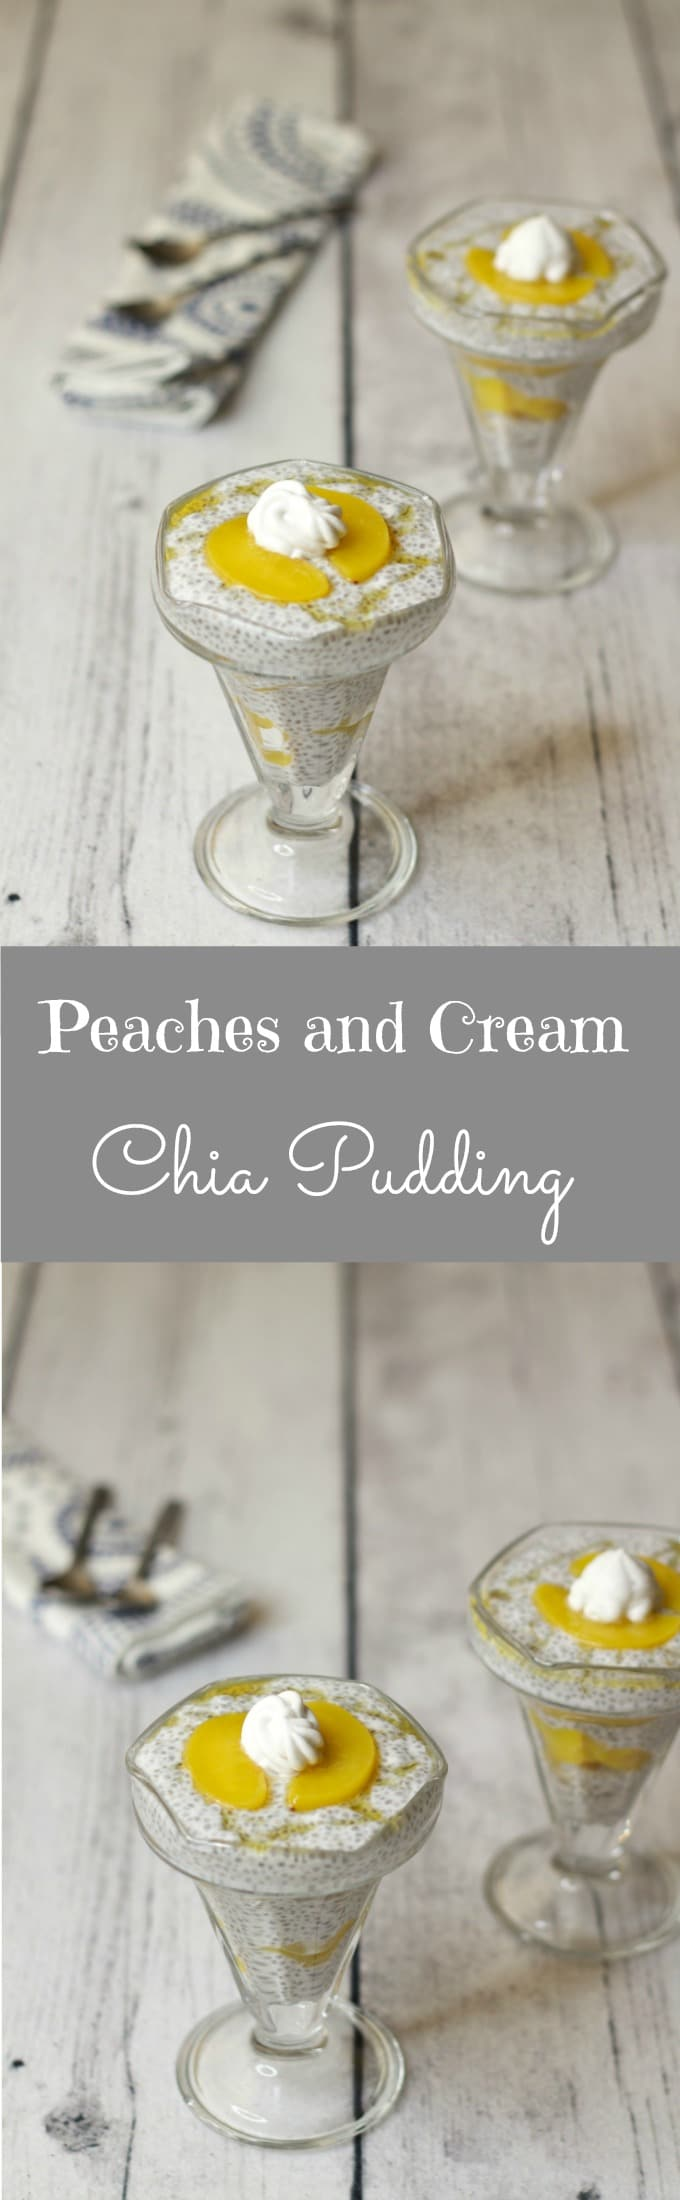 Peaches and Cream Chia Pudding #vegan #dessert #lovingitvegan #dairy-free